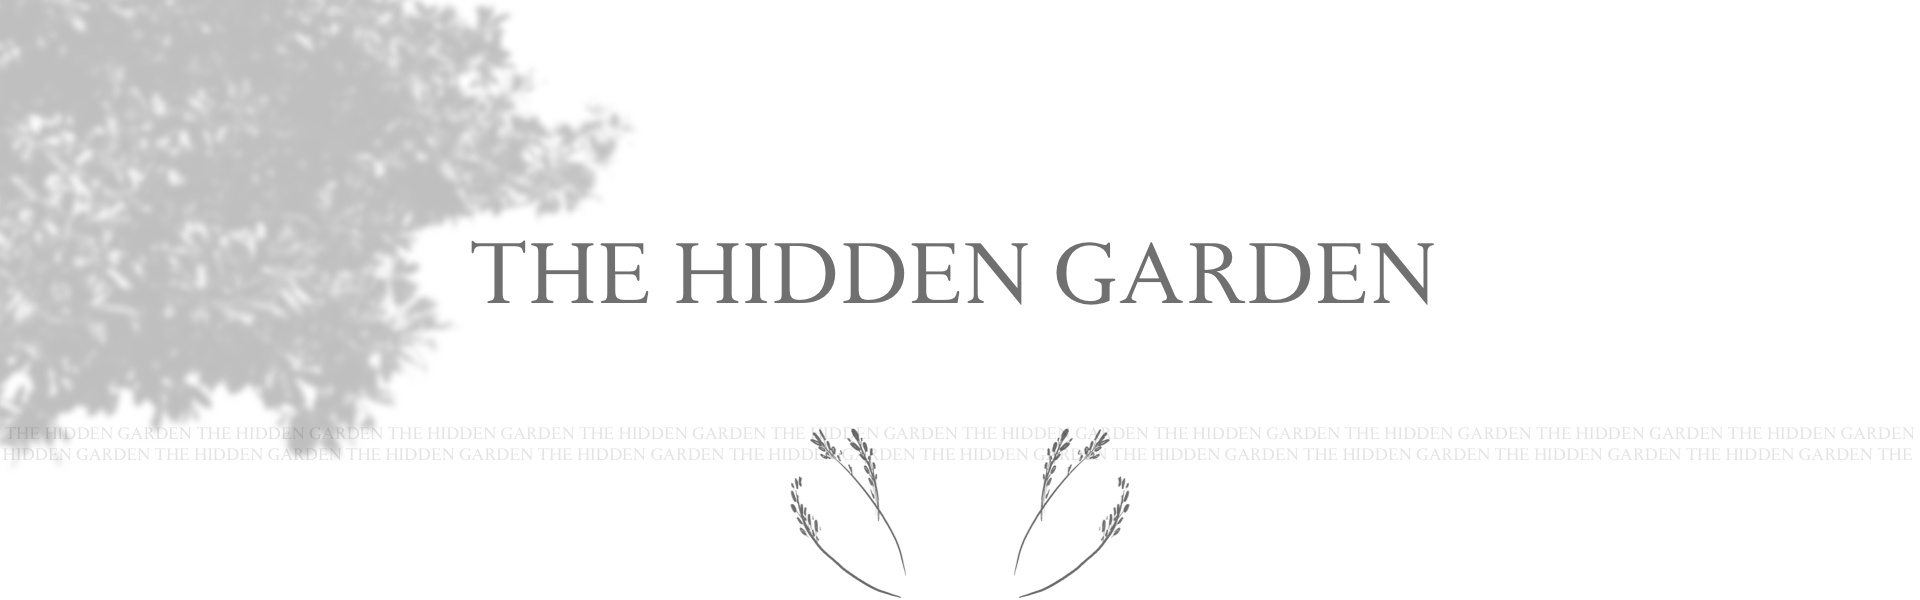 The Hidden Garden